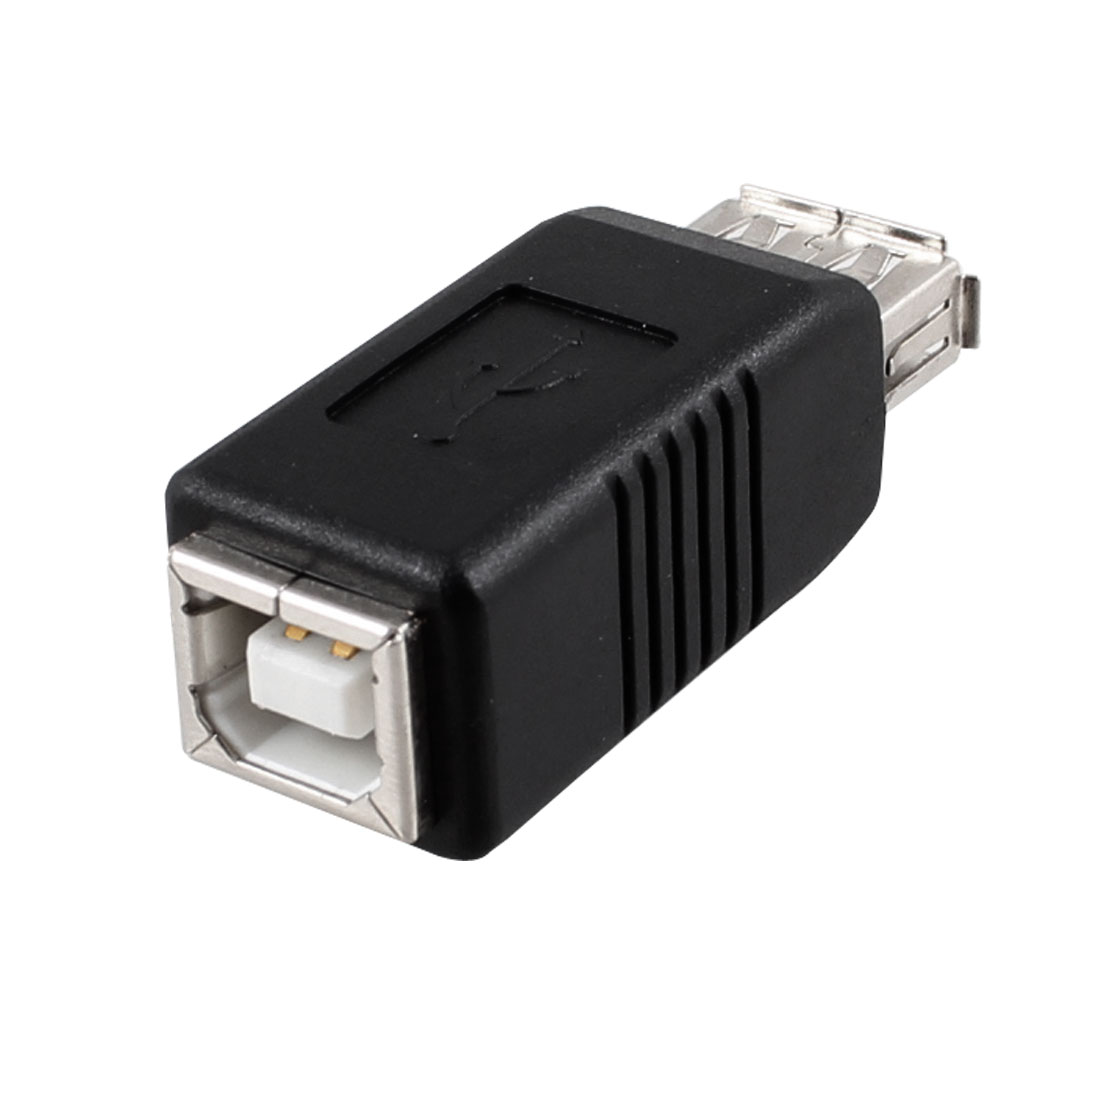 USB Adapter Printer Type A to Type B Female Connector Black Silver Tone